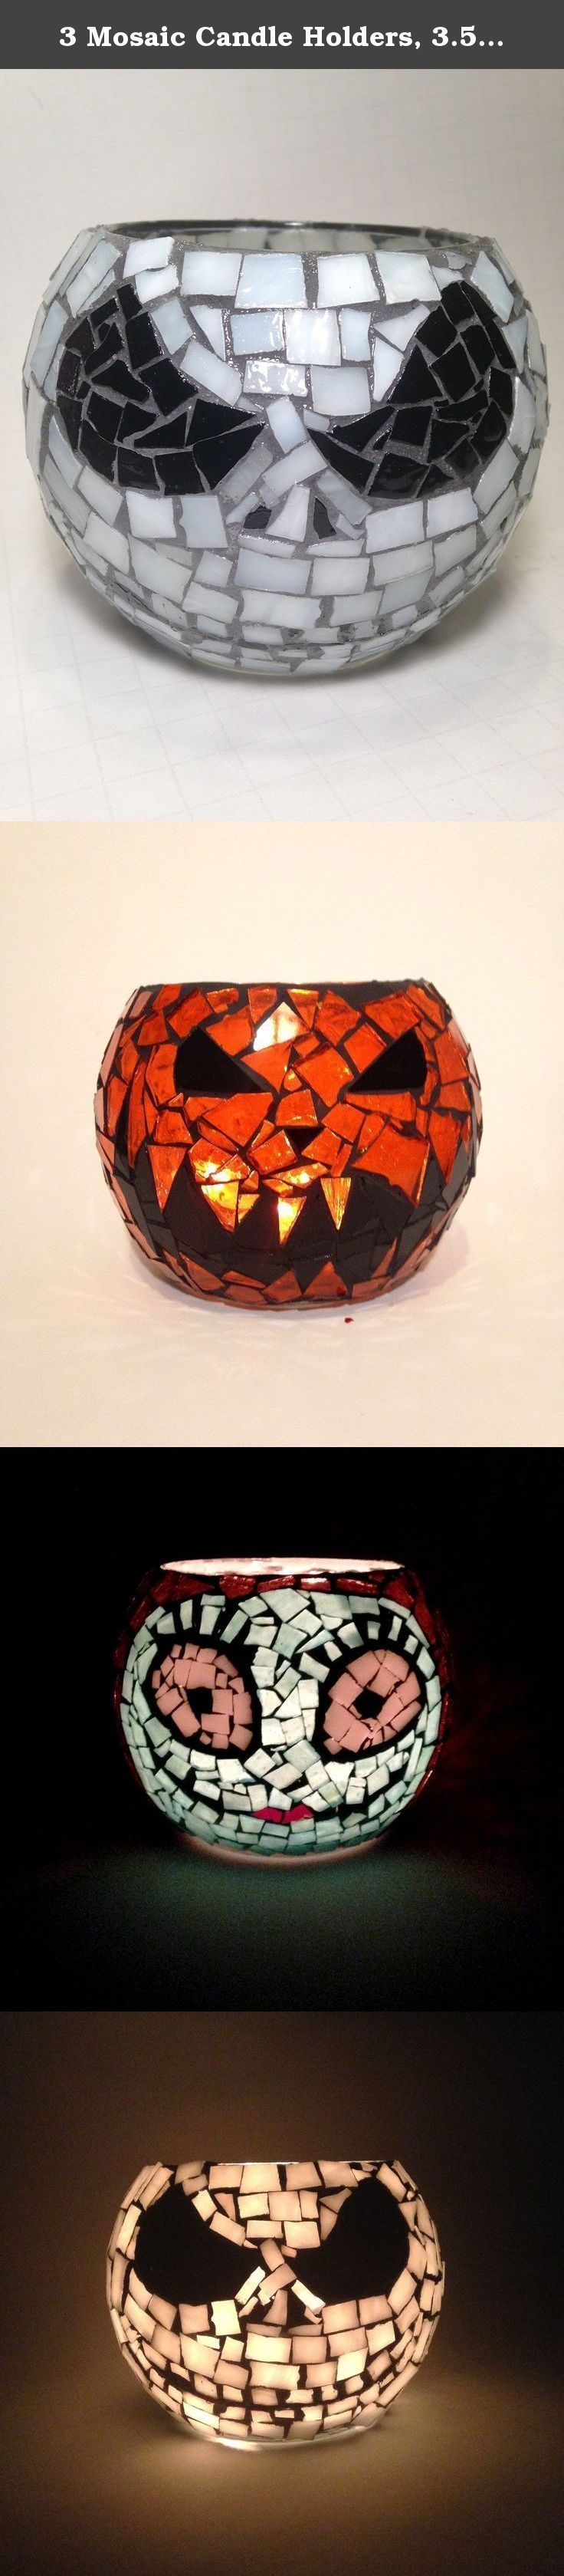 3 Mosaic Candle Holders, 3.5 Inch Votive, Skeleton Jack, Pumpkin Jack O lantern and Lady. Handcrafted Mosaic candle holders. 3 Handcrafted mosaic votives. Stained glass is hand cut and bonded to a 3.5 inch glass bubble votive. It is grouted and sealed with triple thick gloss. This votive is great for flame less candles or traditional candles. In the photos we used 3 tea light candles and it lit up beautifully. These are handcrafted, each one is unique and could have a slight variance in…